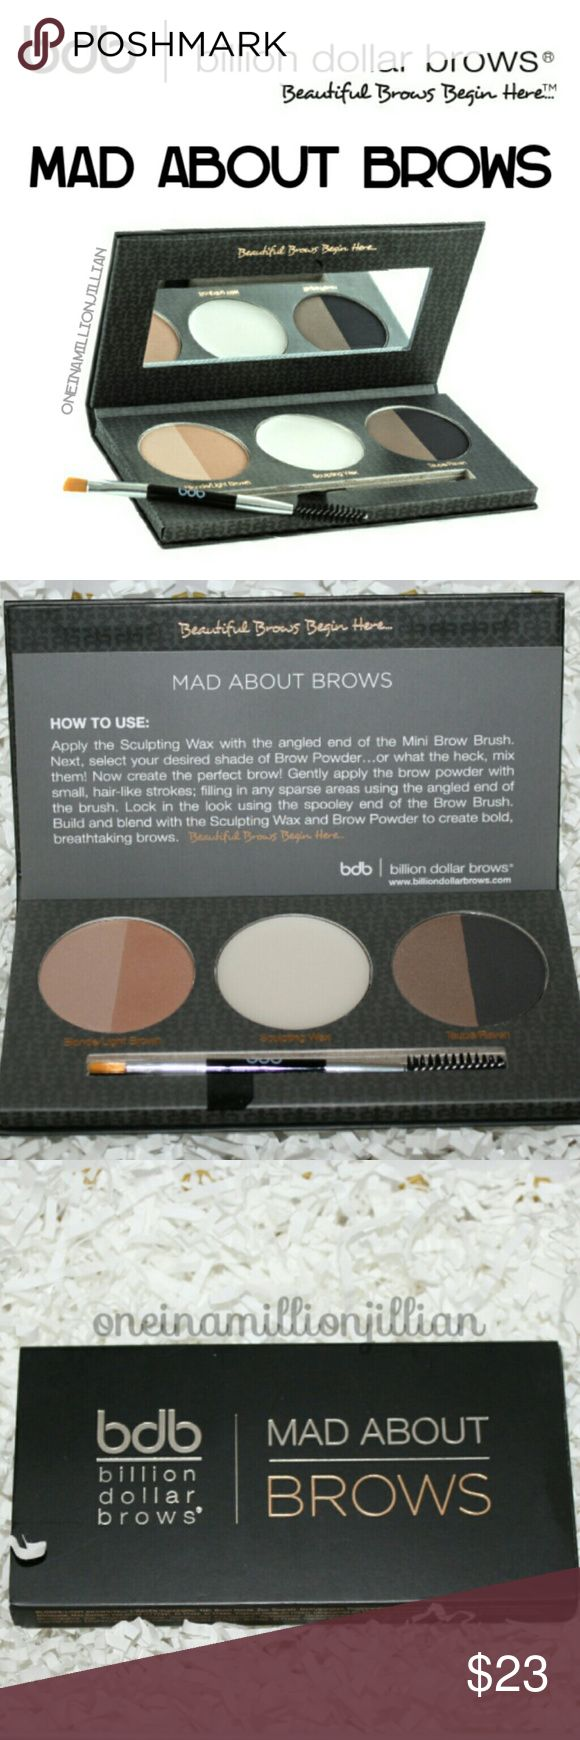 BDB Mad About Brows MUA Palette New - Never Used  Full Sz & Authentic  The brow palette includes 4 Brow Powder shades from their collection ☆ Taupe, Blonde, Light Brown & Raven. So whatever your brow color one of these will enhance them & make them pop whilst keeping the overall look natural. The beauty of having all the colors is that you can also mix them to adapt the color according to the occasion, season & your hair color. The palette also includes sculpting wax to keep the brows in…